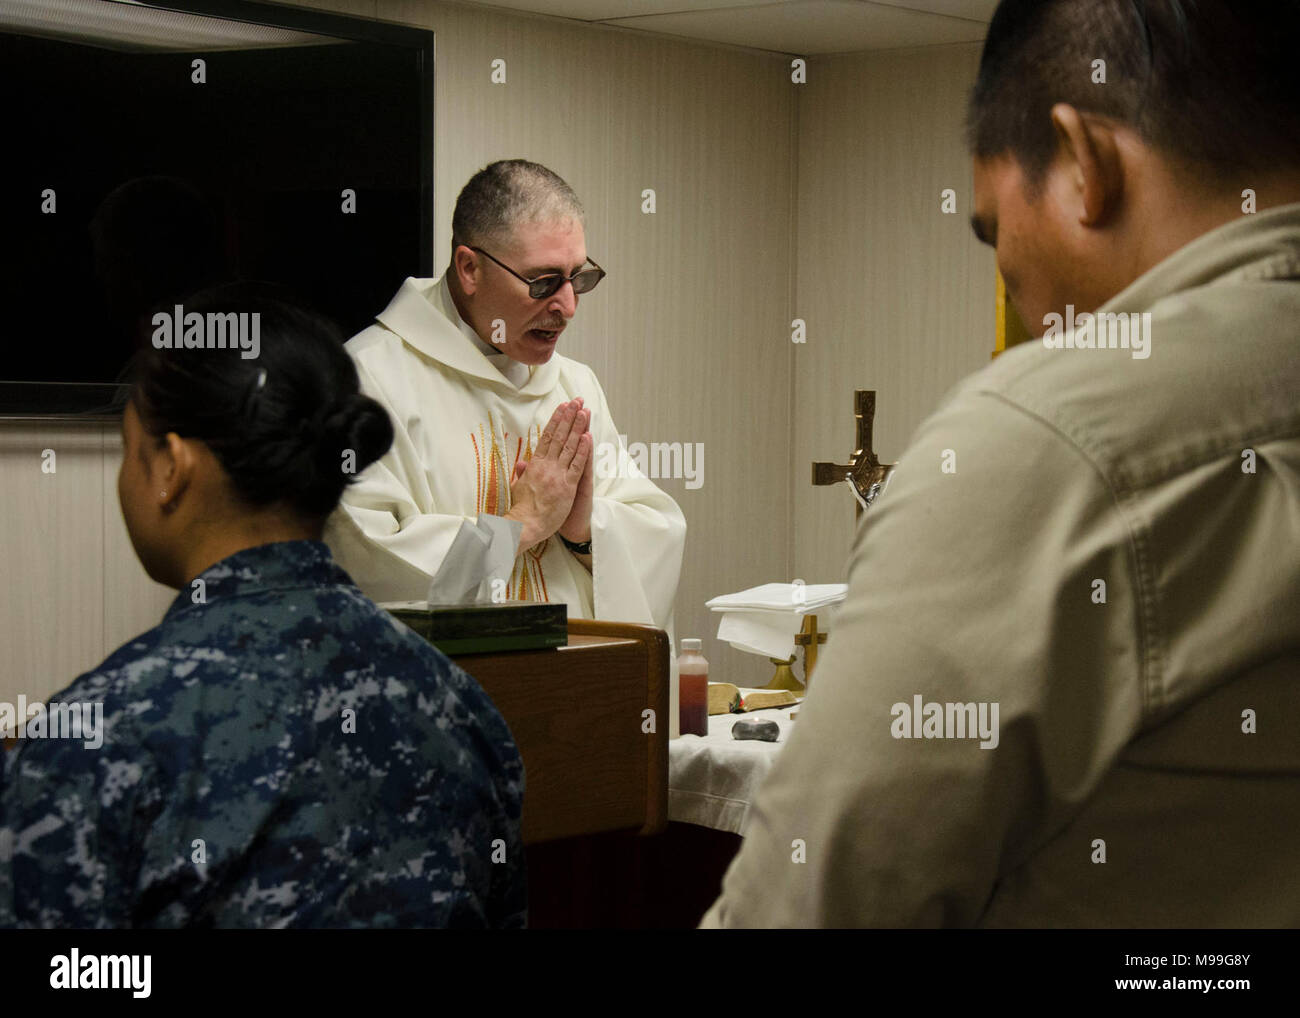 POLARIS POINT, Guam (Feb. 22, 2018) Lt. Cmdr. Andrew Colvin, a Naval Base Guam Command Chaplain, celebrates Roman Catholic Mass in the Conway Chapel aboard the submarine tender USS Frank Cable (AS 40), Feb. 22. Frank Cable, forward-deployed to Guam, repairs, rearms and reprovisions deployed U.S. Naval Forces in the Indo-Pacific region. (U.S. Navy - Stock Image